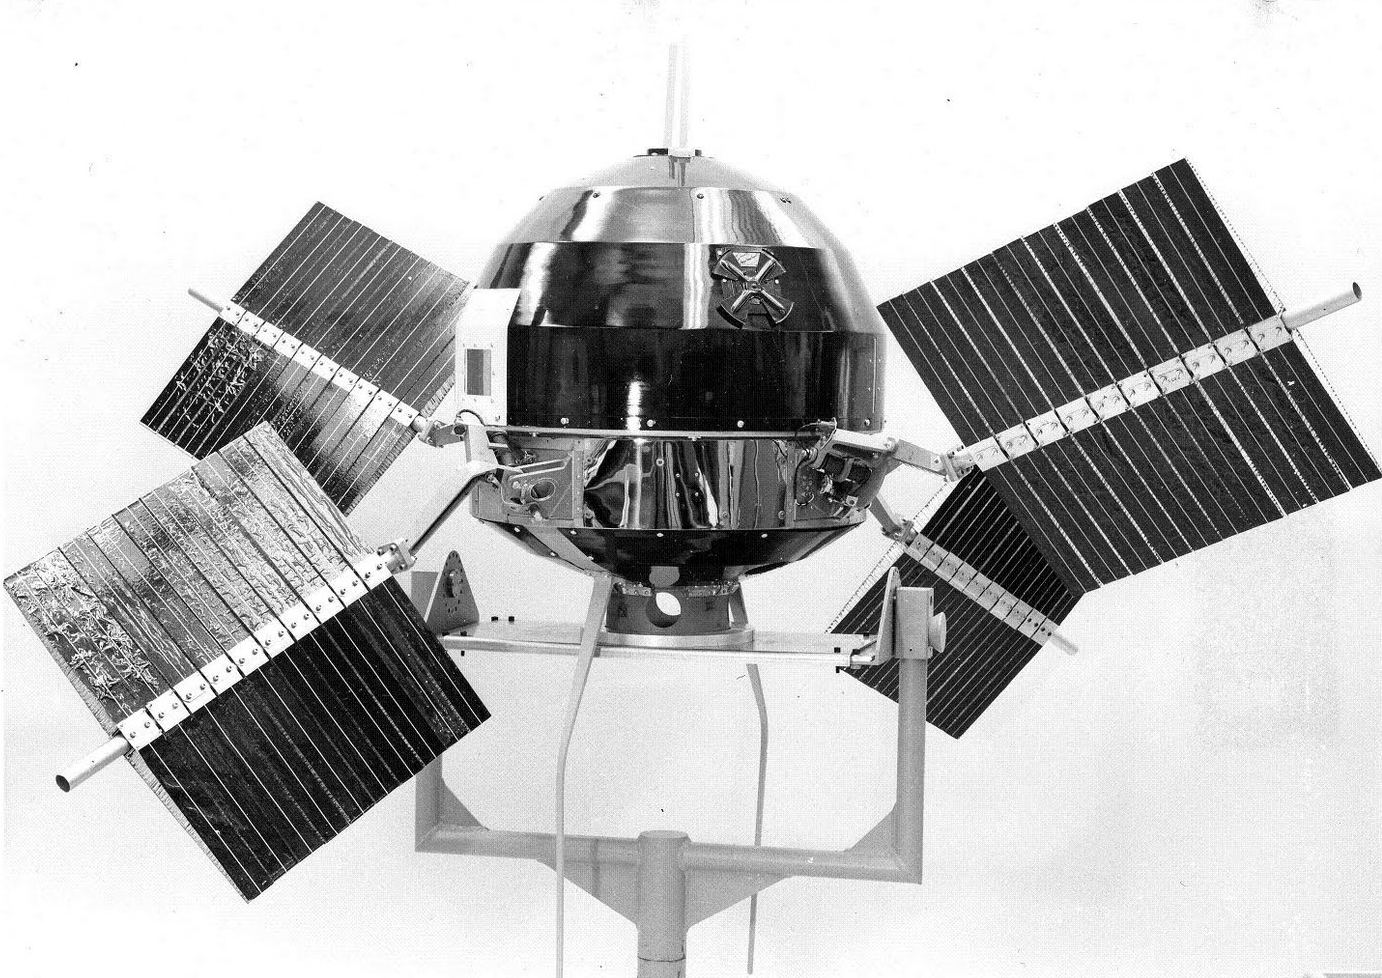 Explorer 6, the first satellite to transmit images of Earth from space, NASA photo explorer_6.jpg